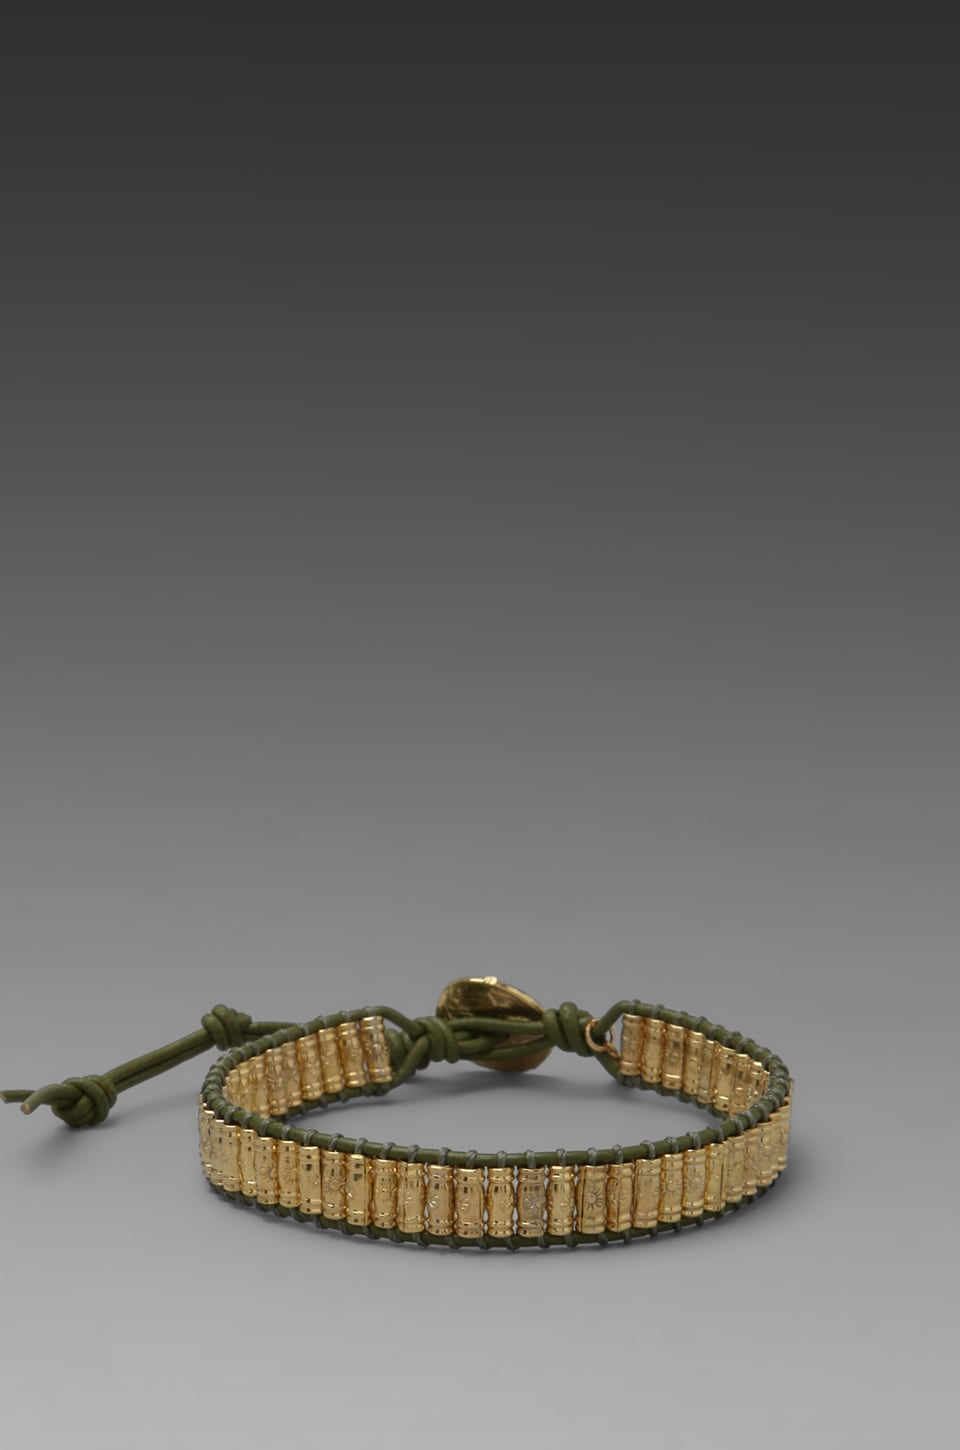 M.Cohen Gold Stamped Bead Bracelet in Olive